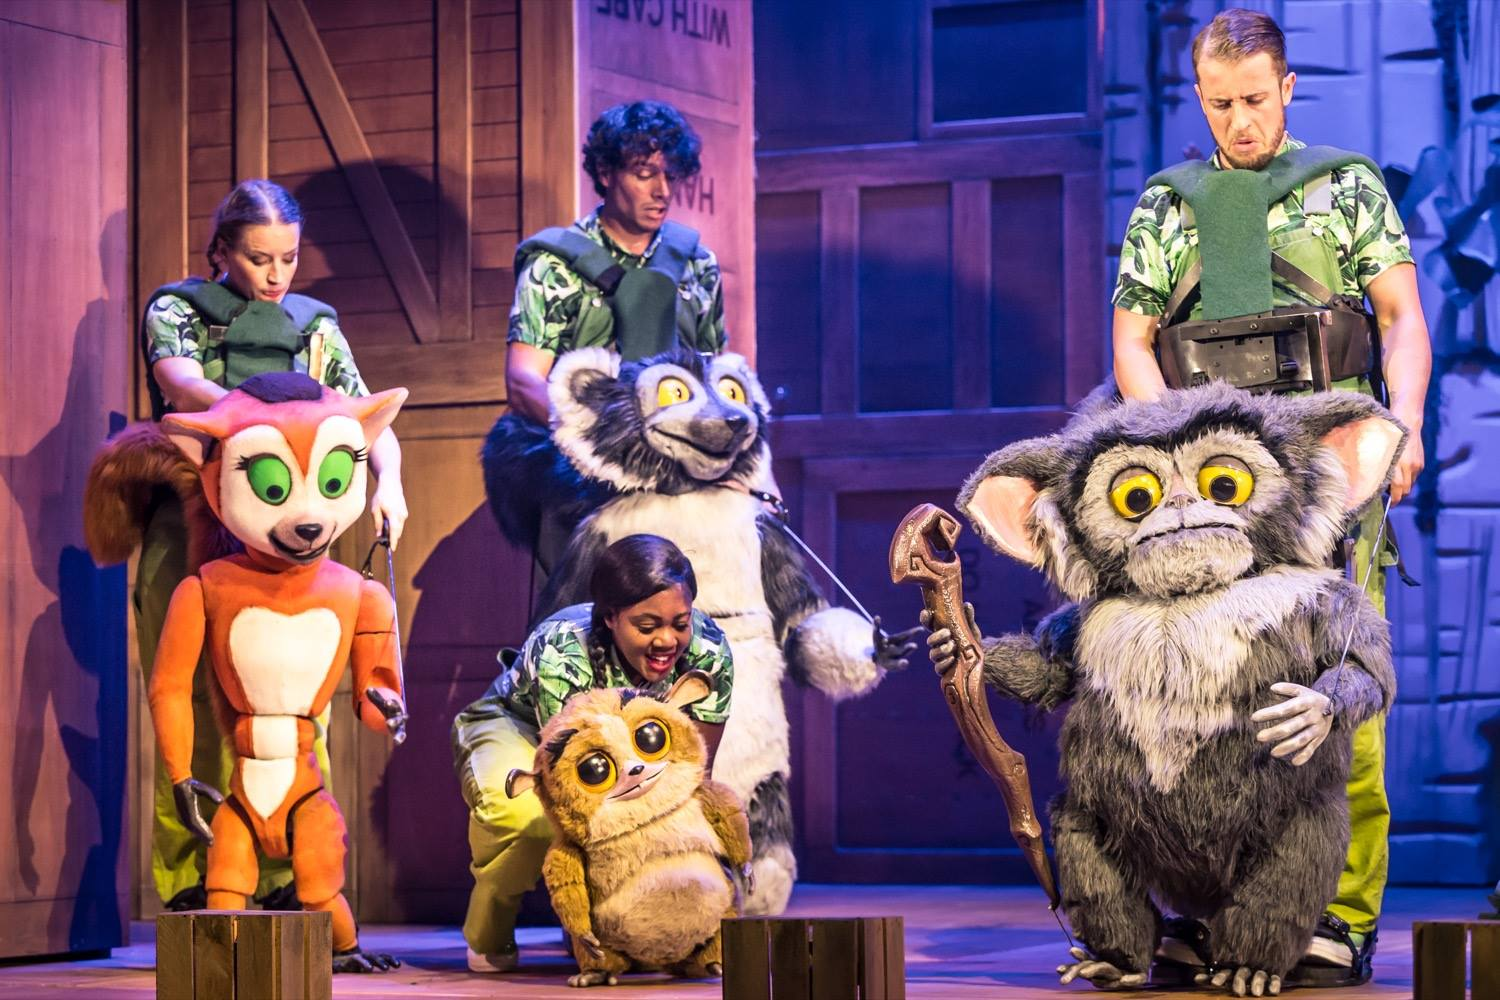 Madagascar The Musical at The Hippodrome in Bristol